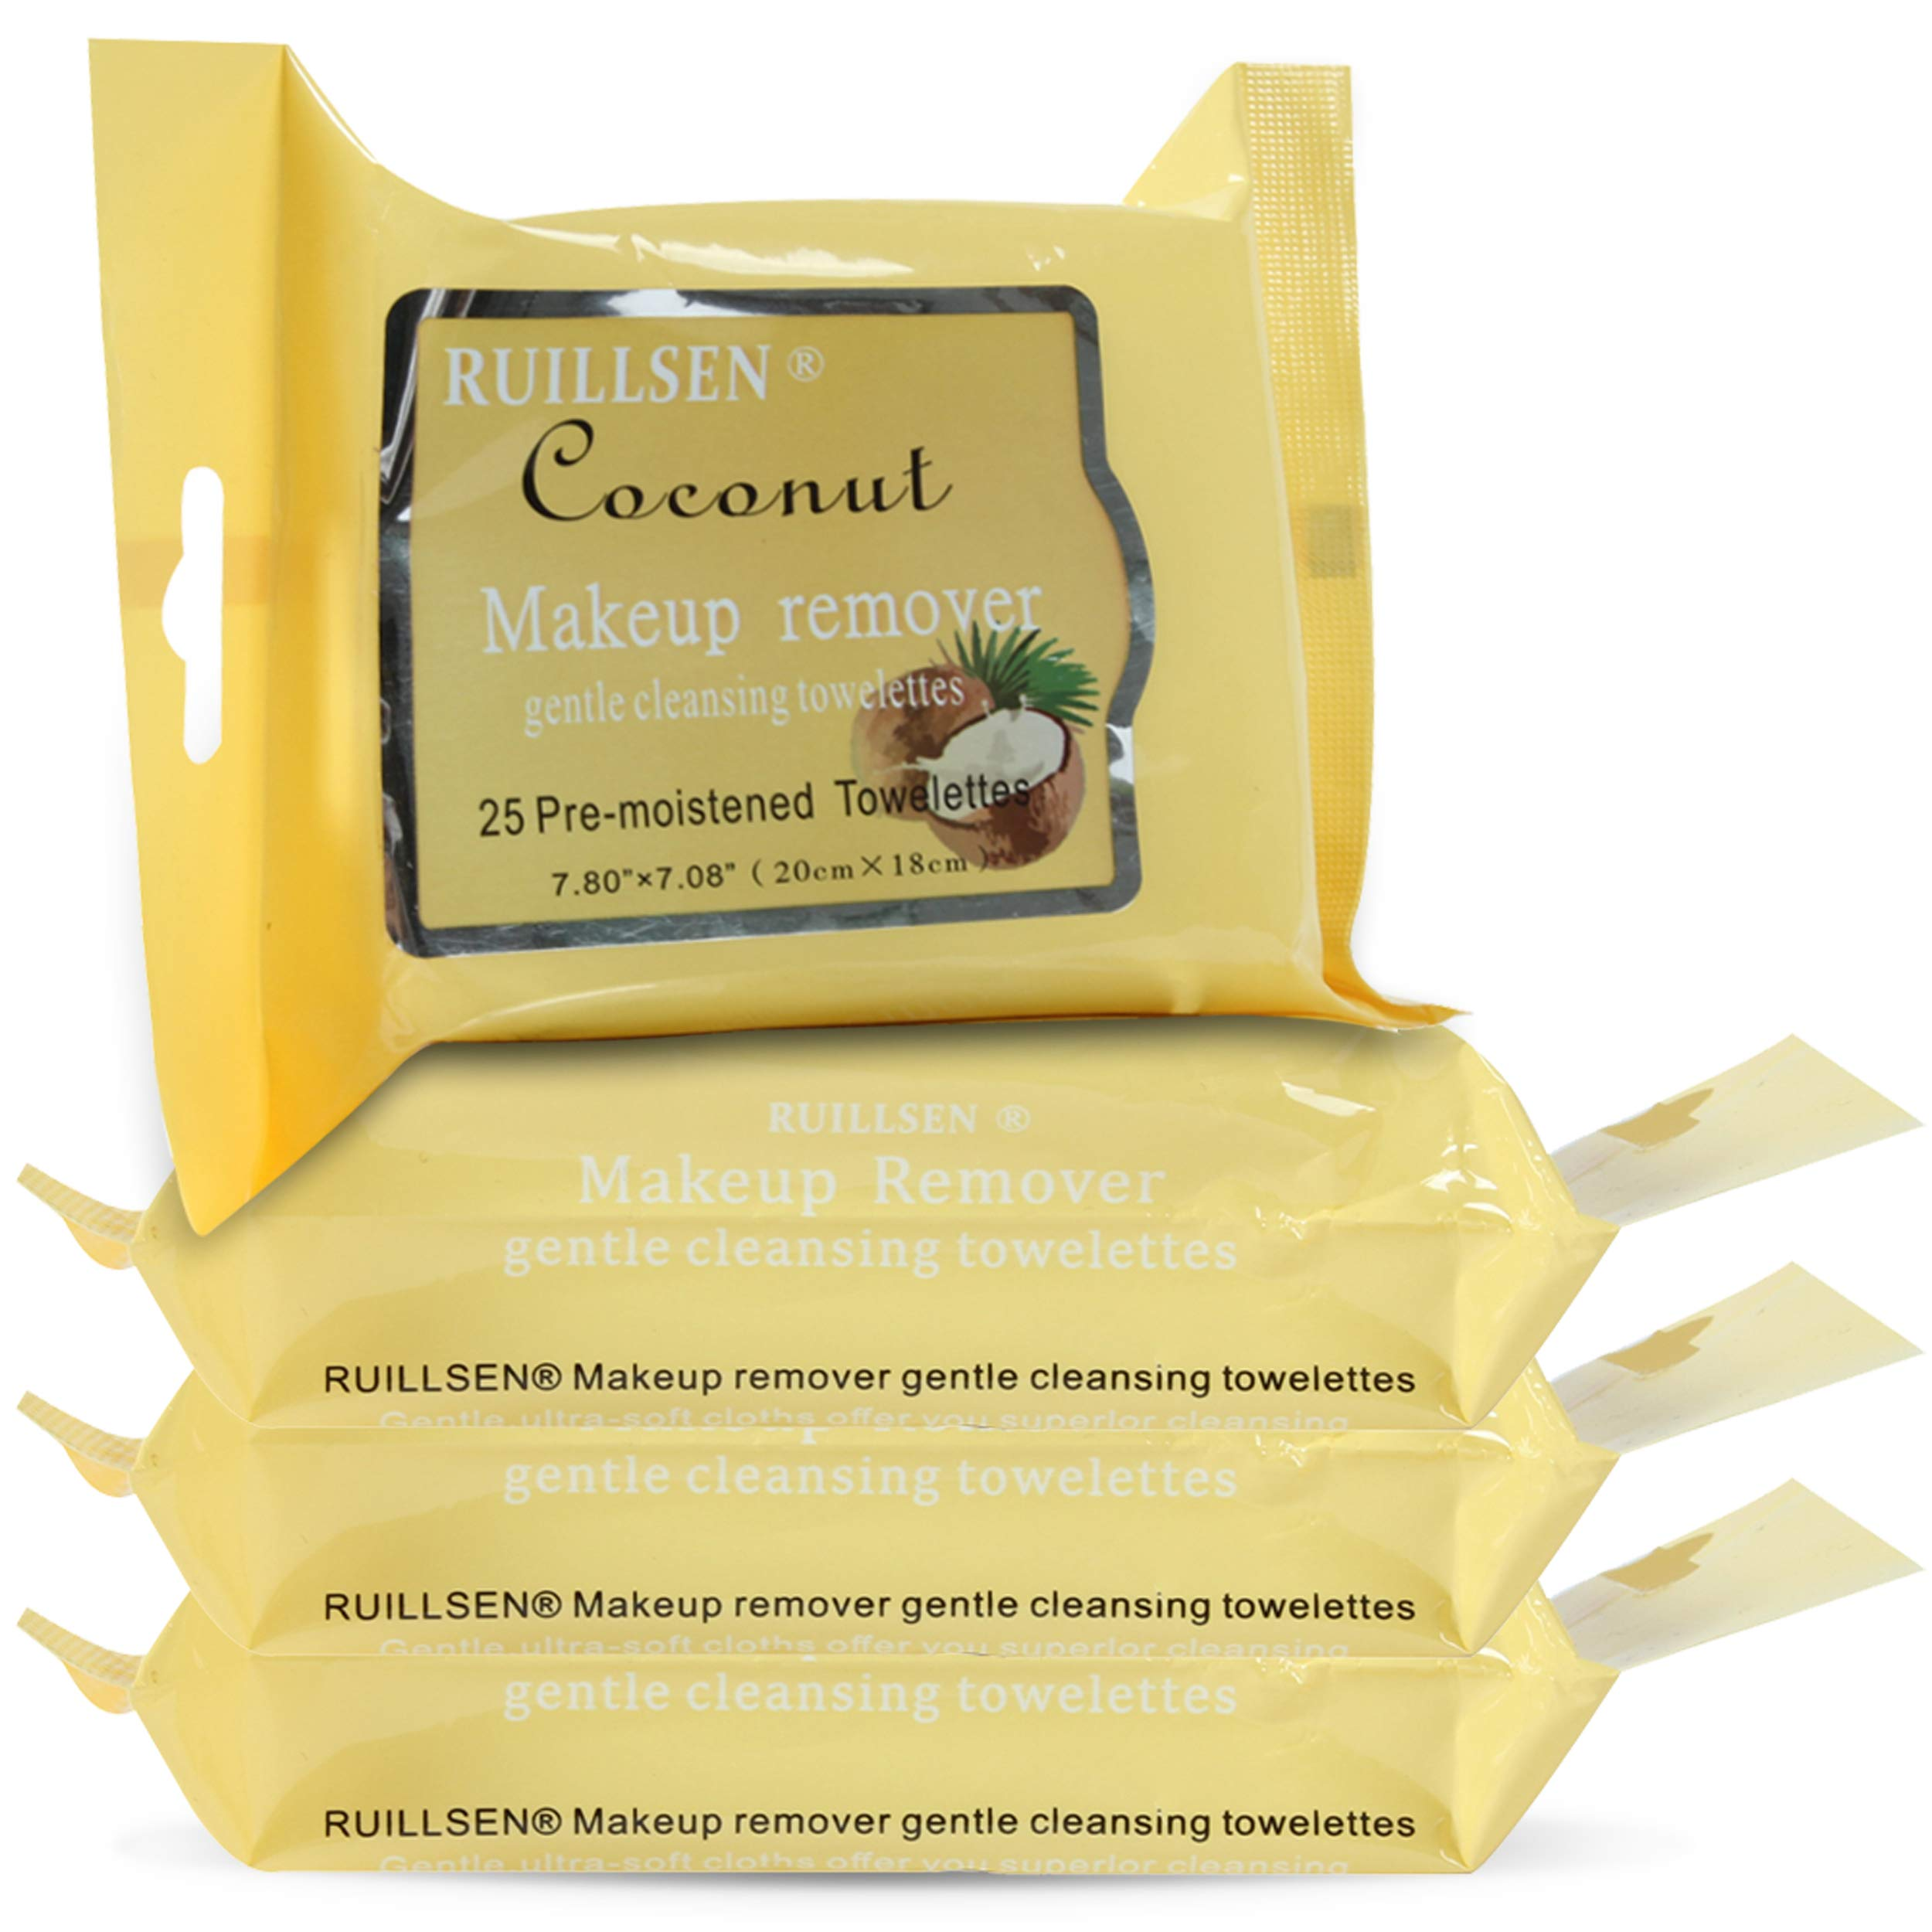 RUILLSEN Extra Moist Makeup Removing Towelettes Facial Cleansing Cloth Cleansing Towelettes Daily Face Wipes to Remove Dirt, Oil, Makeup & Waterproof Mascara(Coconut Flavored,25 Ct,4 Pks)